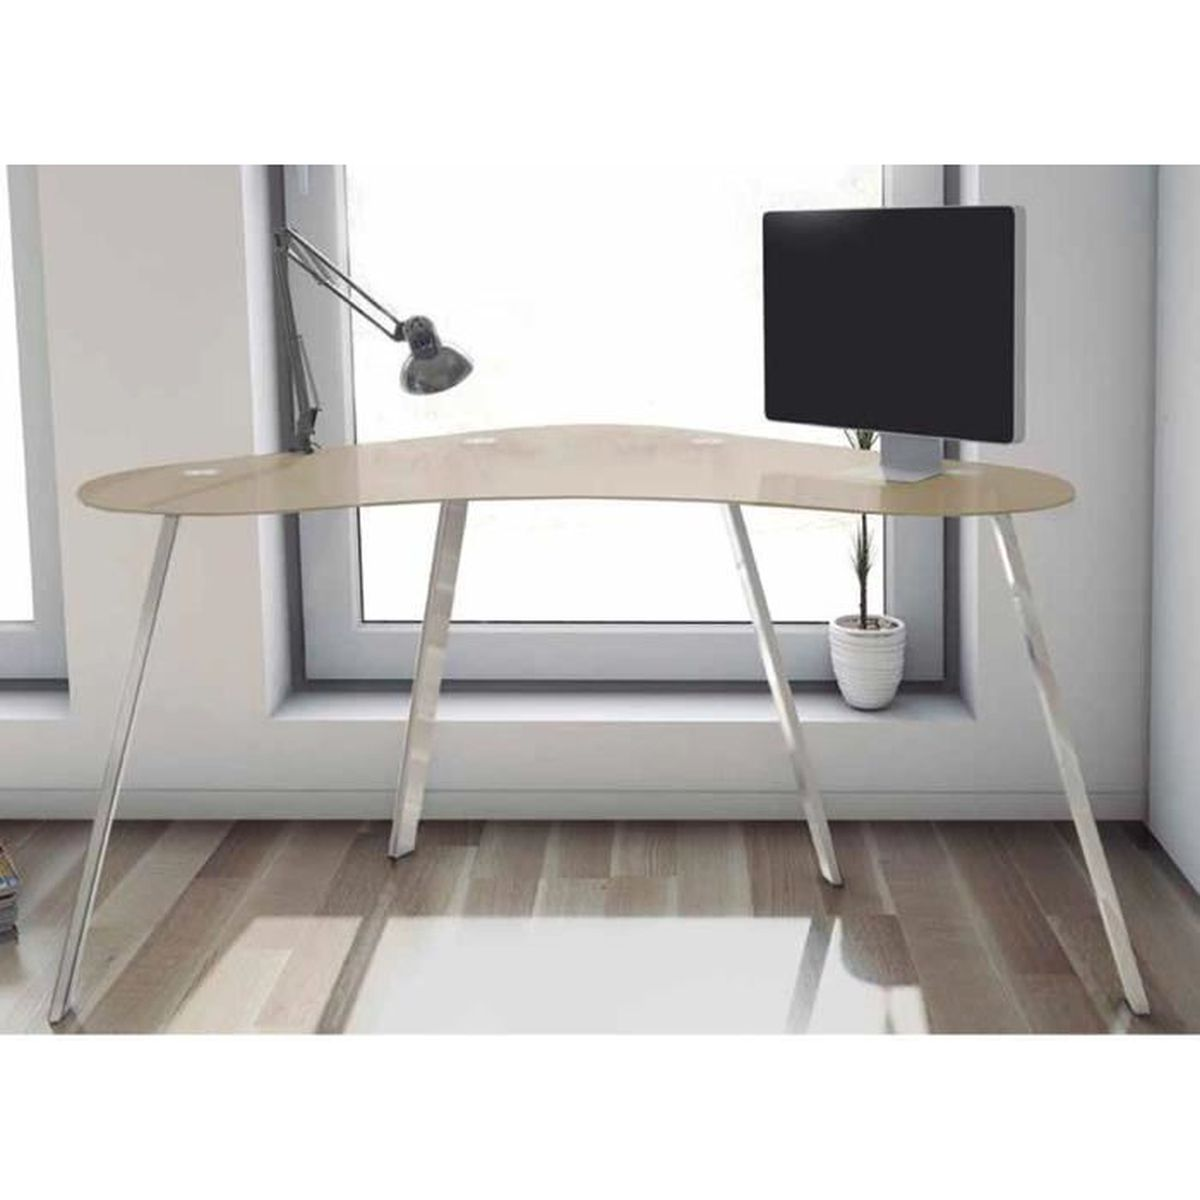 table de bureau en verre coloris taupe brillant dim 120 x 60 x 75 cm achat vente table. Black Bedroom Furniture Sets. Home Design Ideas